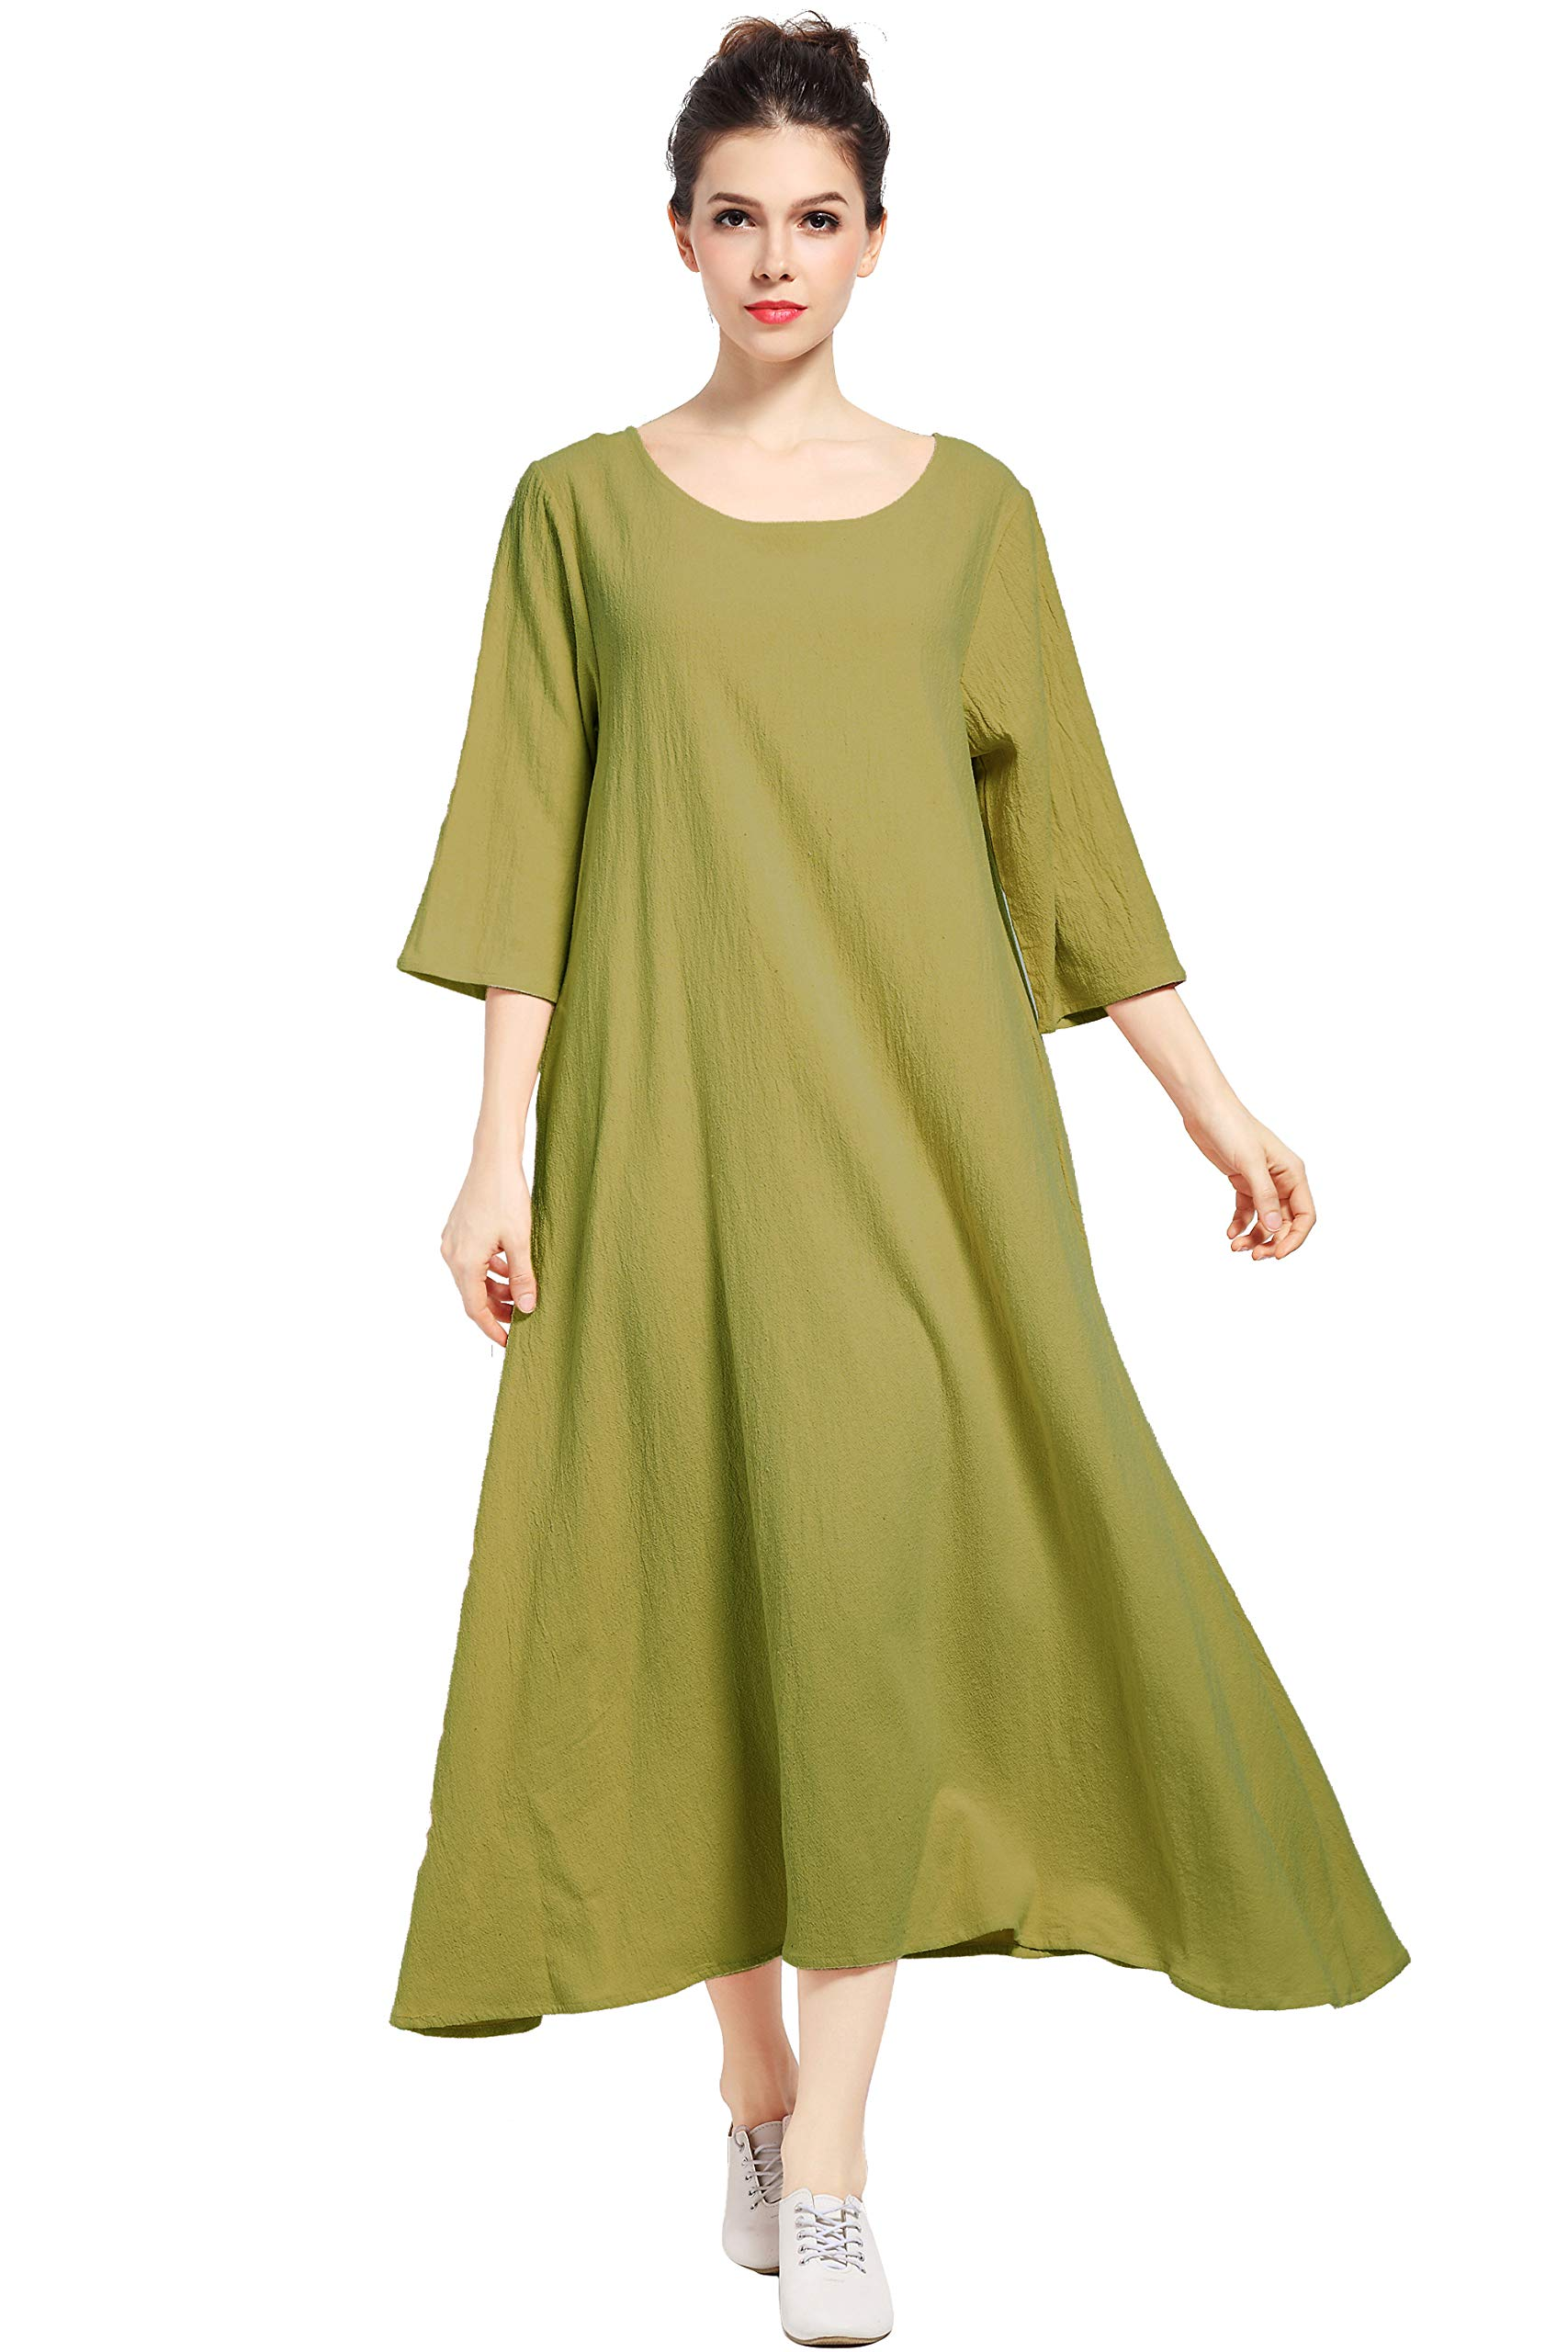 Available at Amazon: Anysize Three Quarter Sleeve Linen Cotton Spring Summer Plus Size Dress F140A